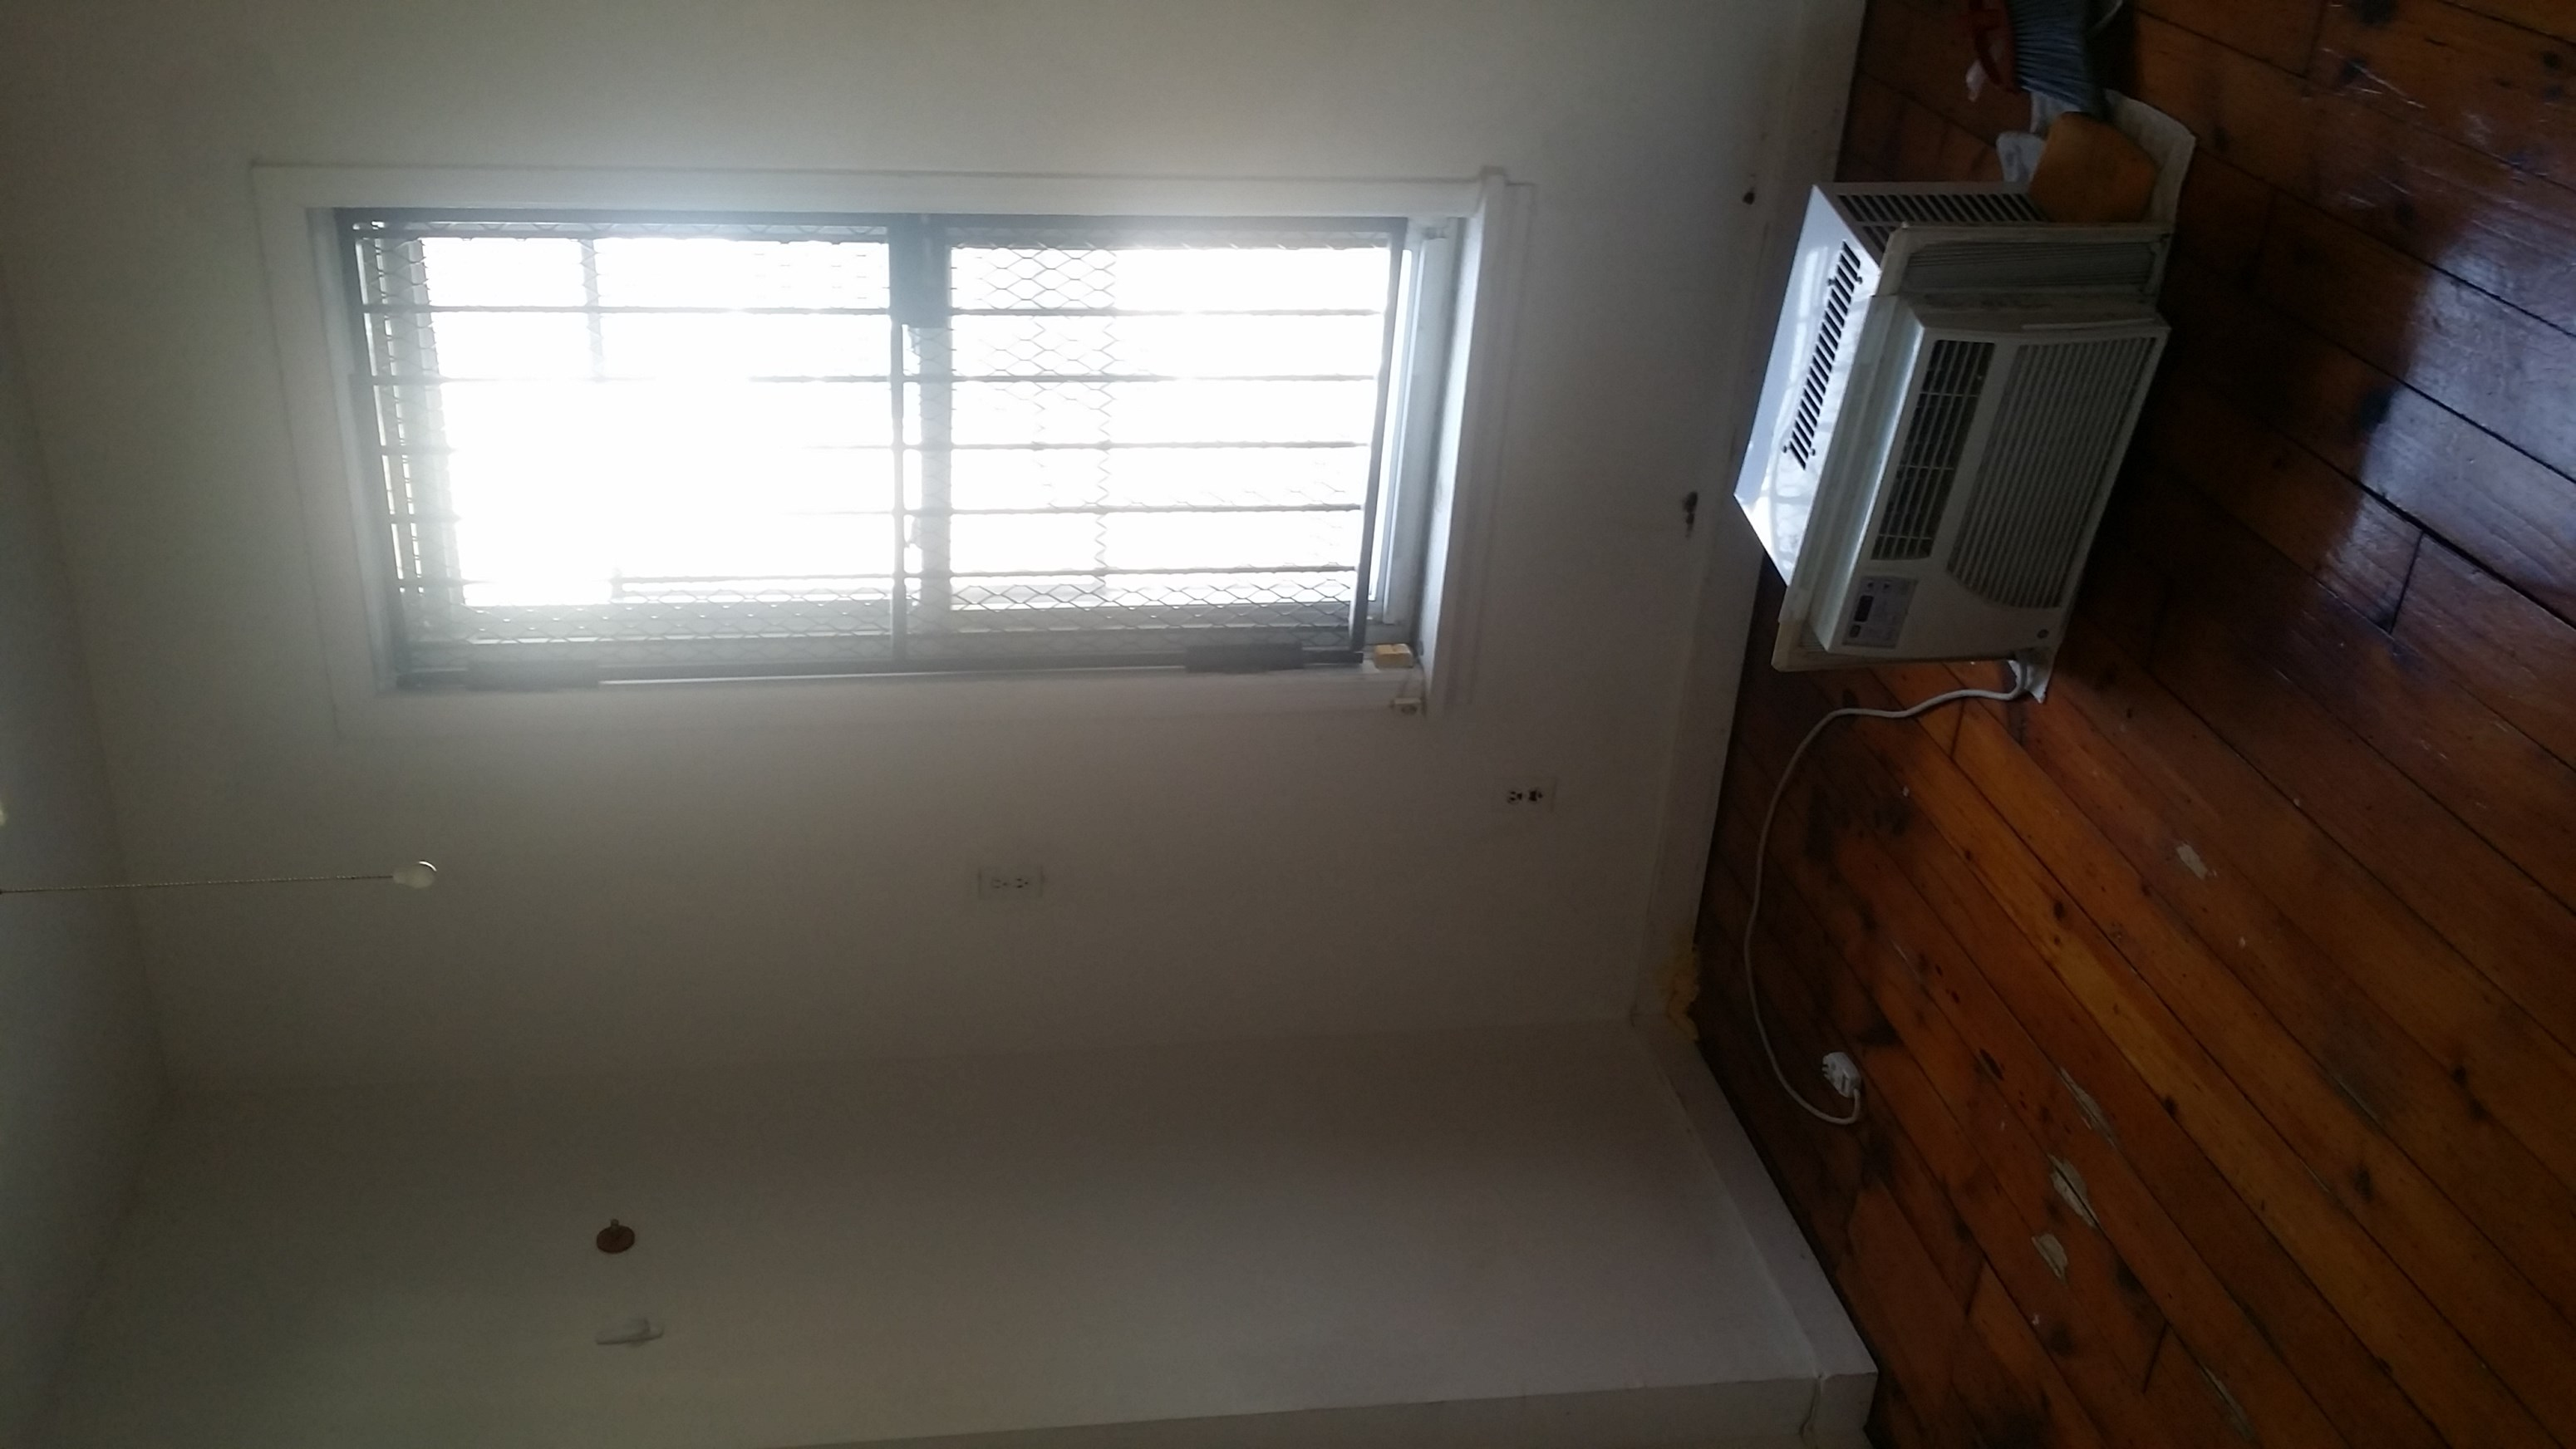 rooms for rent newark, nj – apartments, house, commercial space